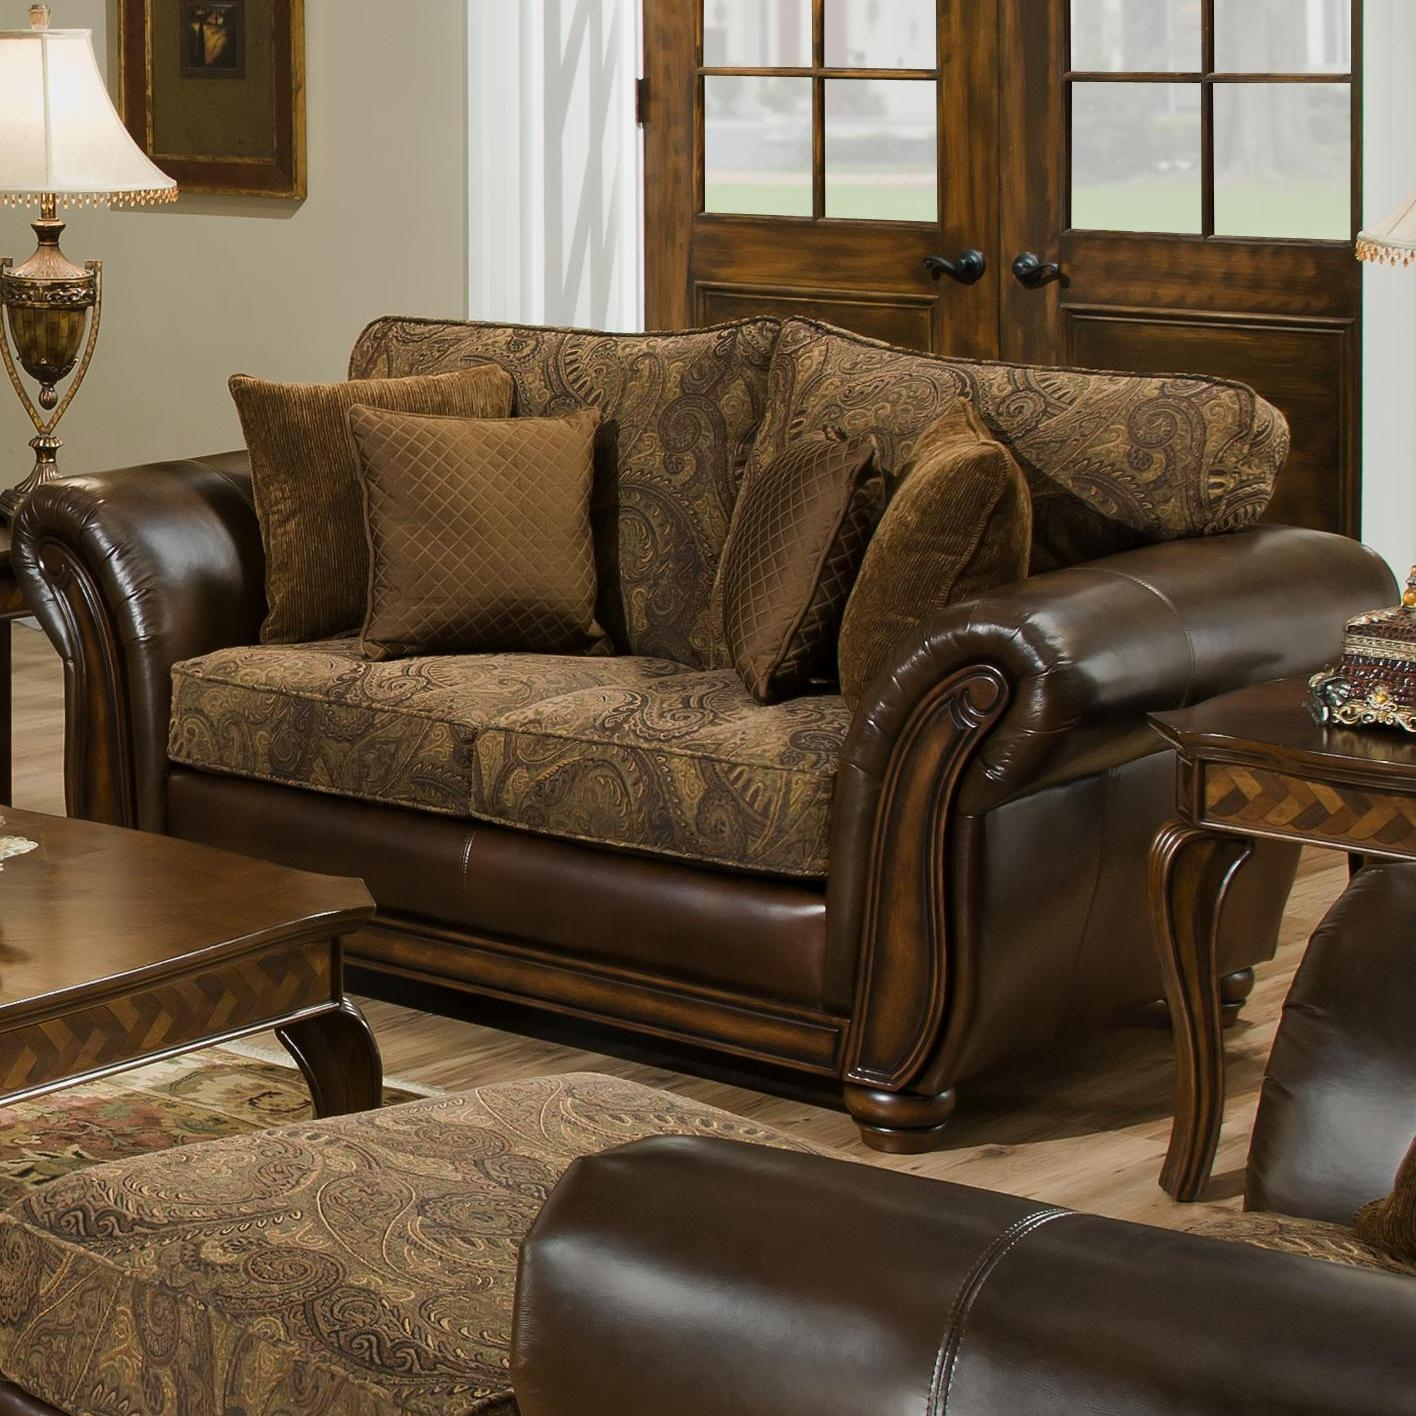 Simmons Upholstery 8104 Queen Leather And Chenille Hide A Bed Sofa Within Simmons Sofa Beds (Image 15 of 20)